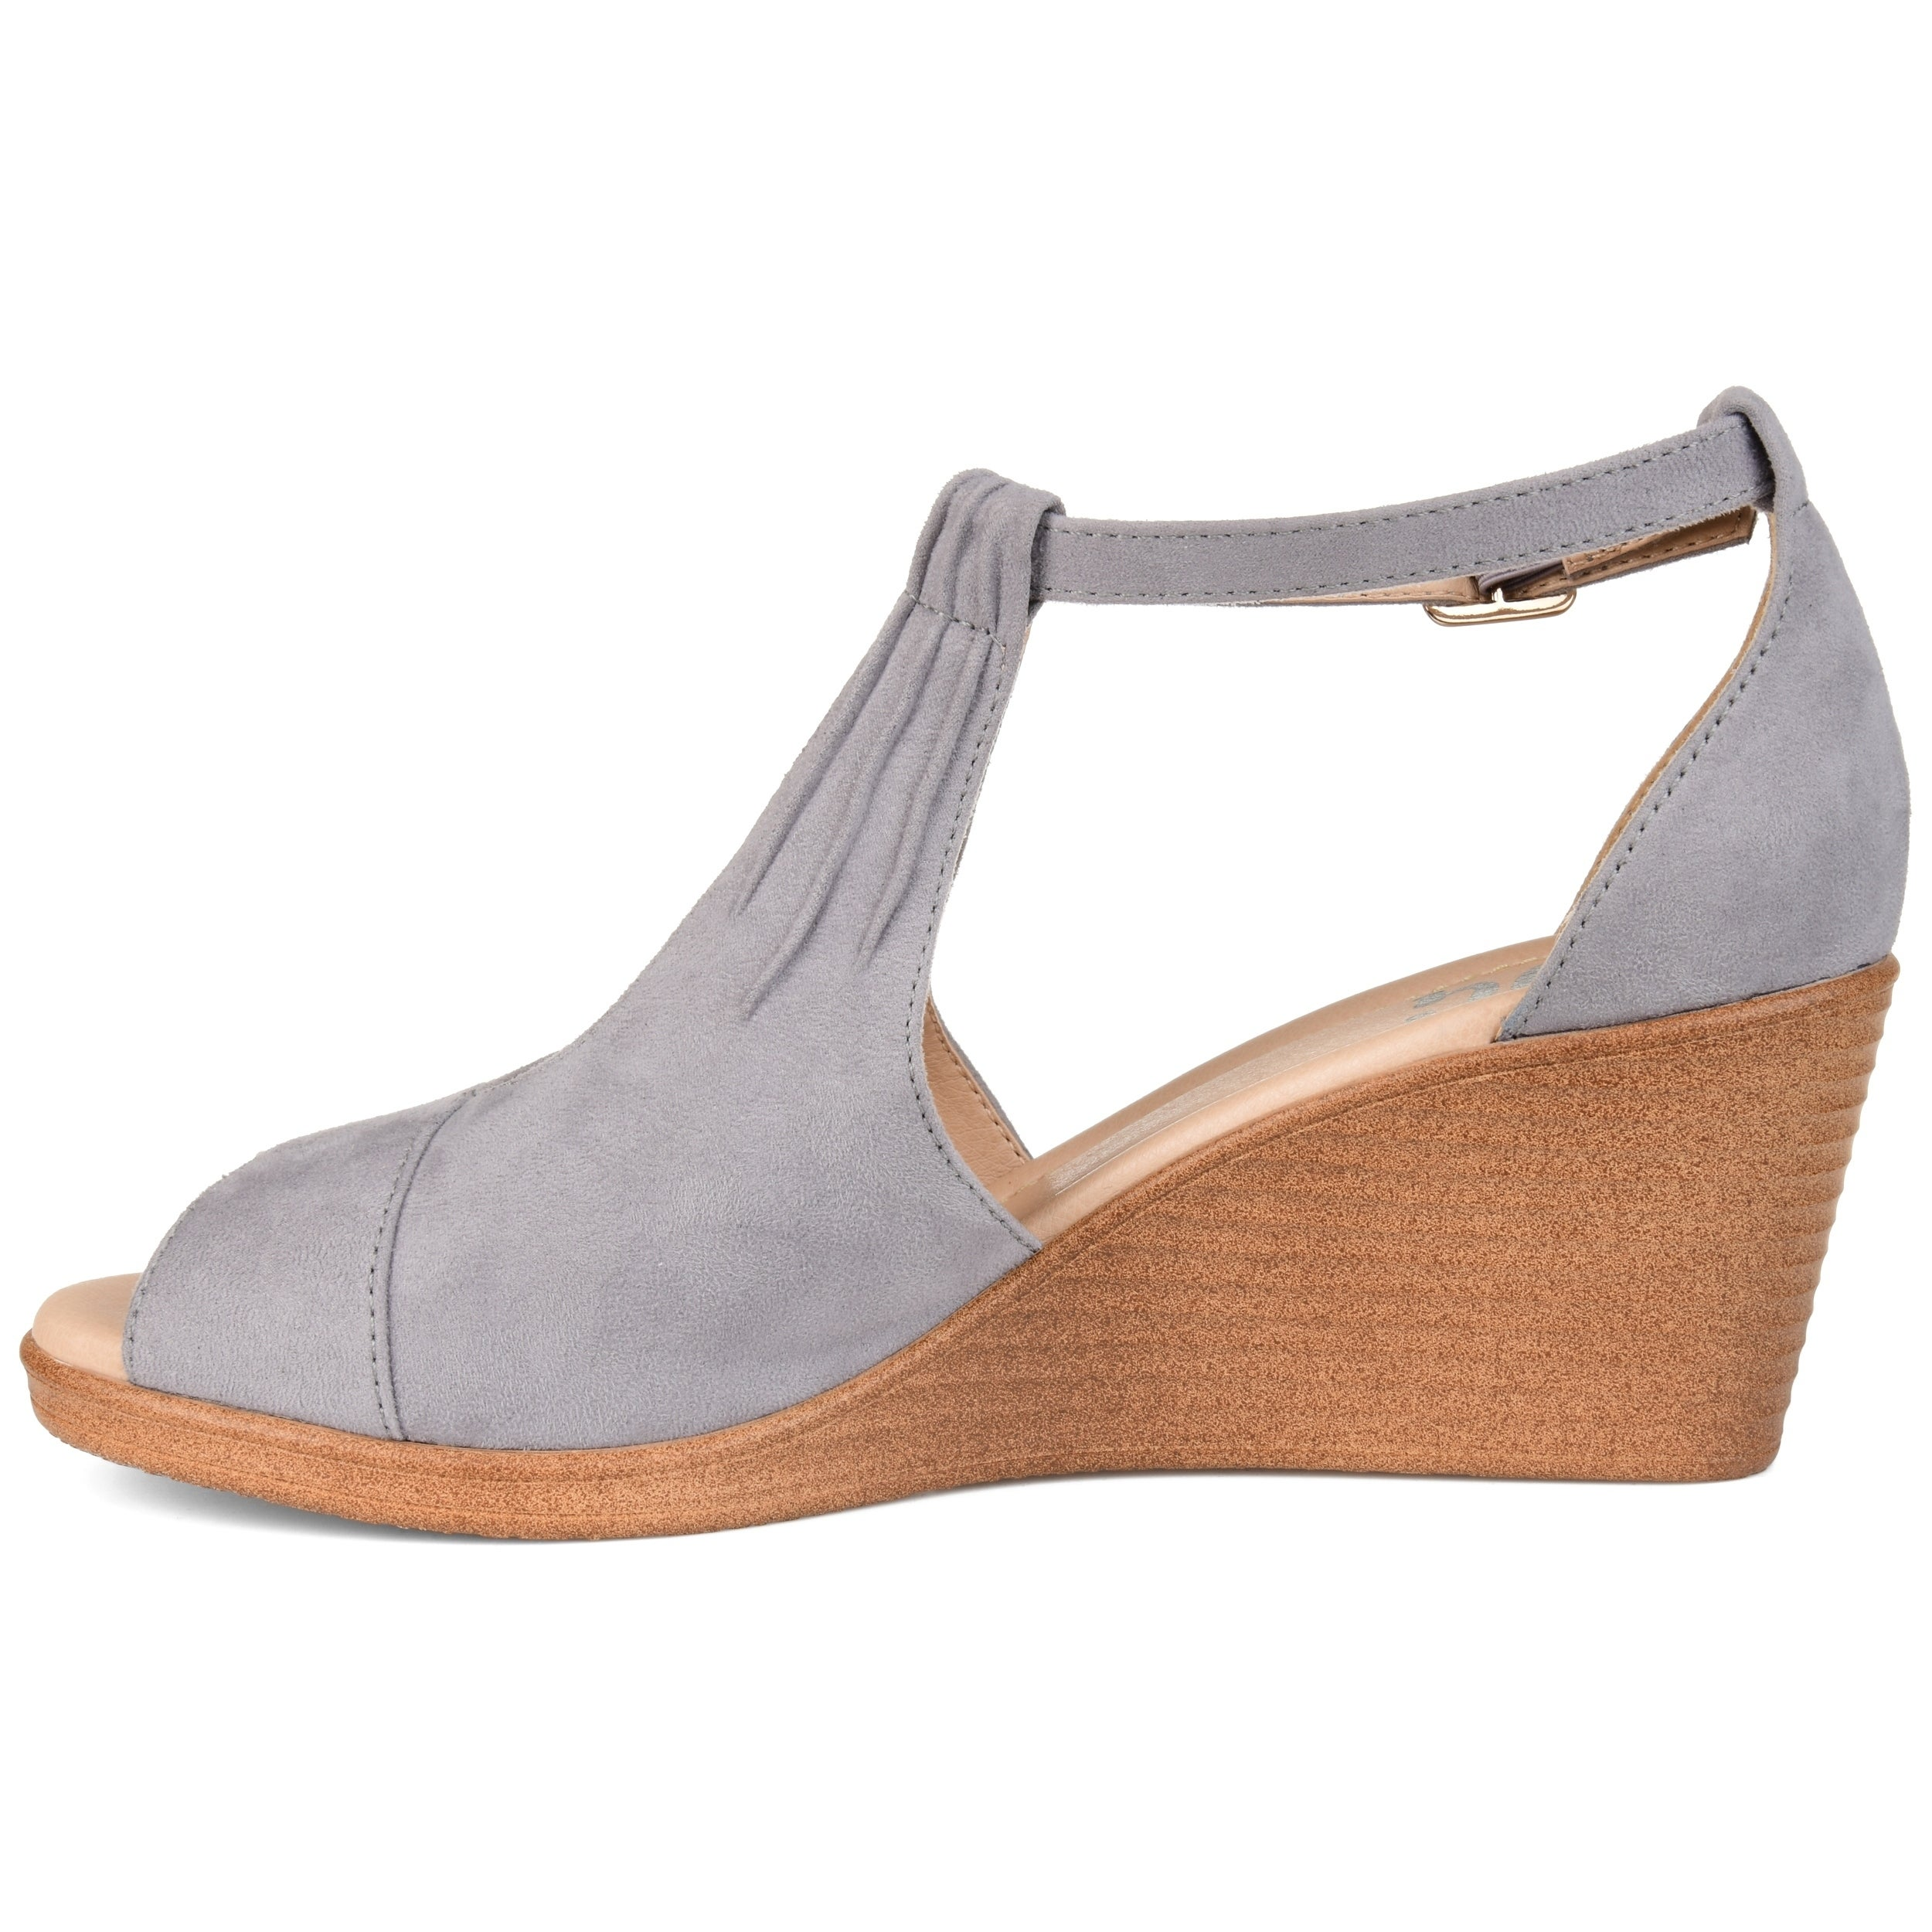 2bf9974c104 Shop Journee Collection Women s  Kedzie  Comfort-sole Center-cut Wedges -  On Sale - Free Shipping Today - Overstock - 20741329